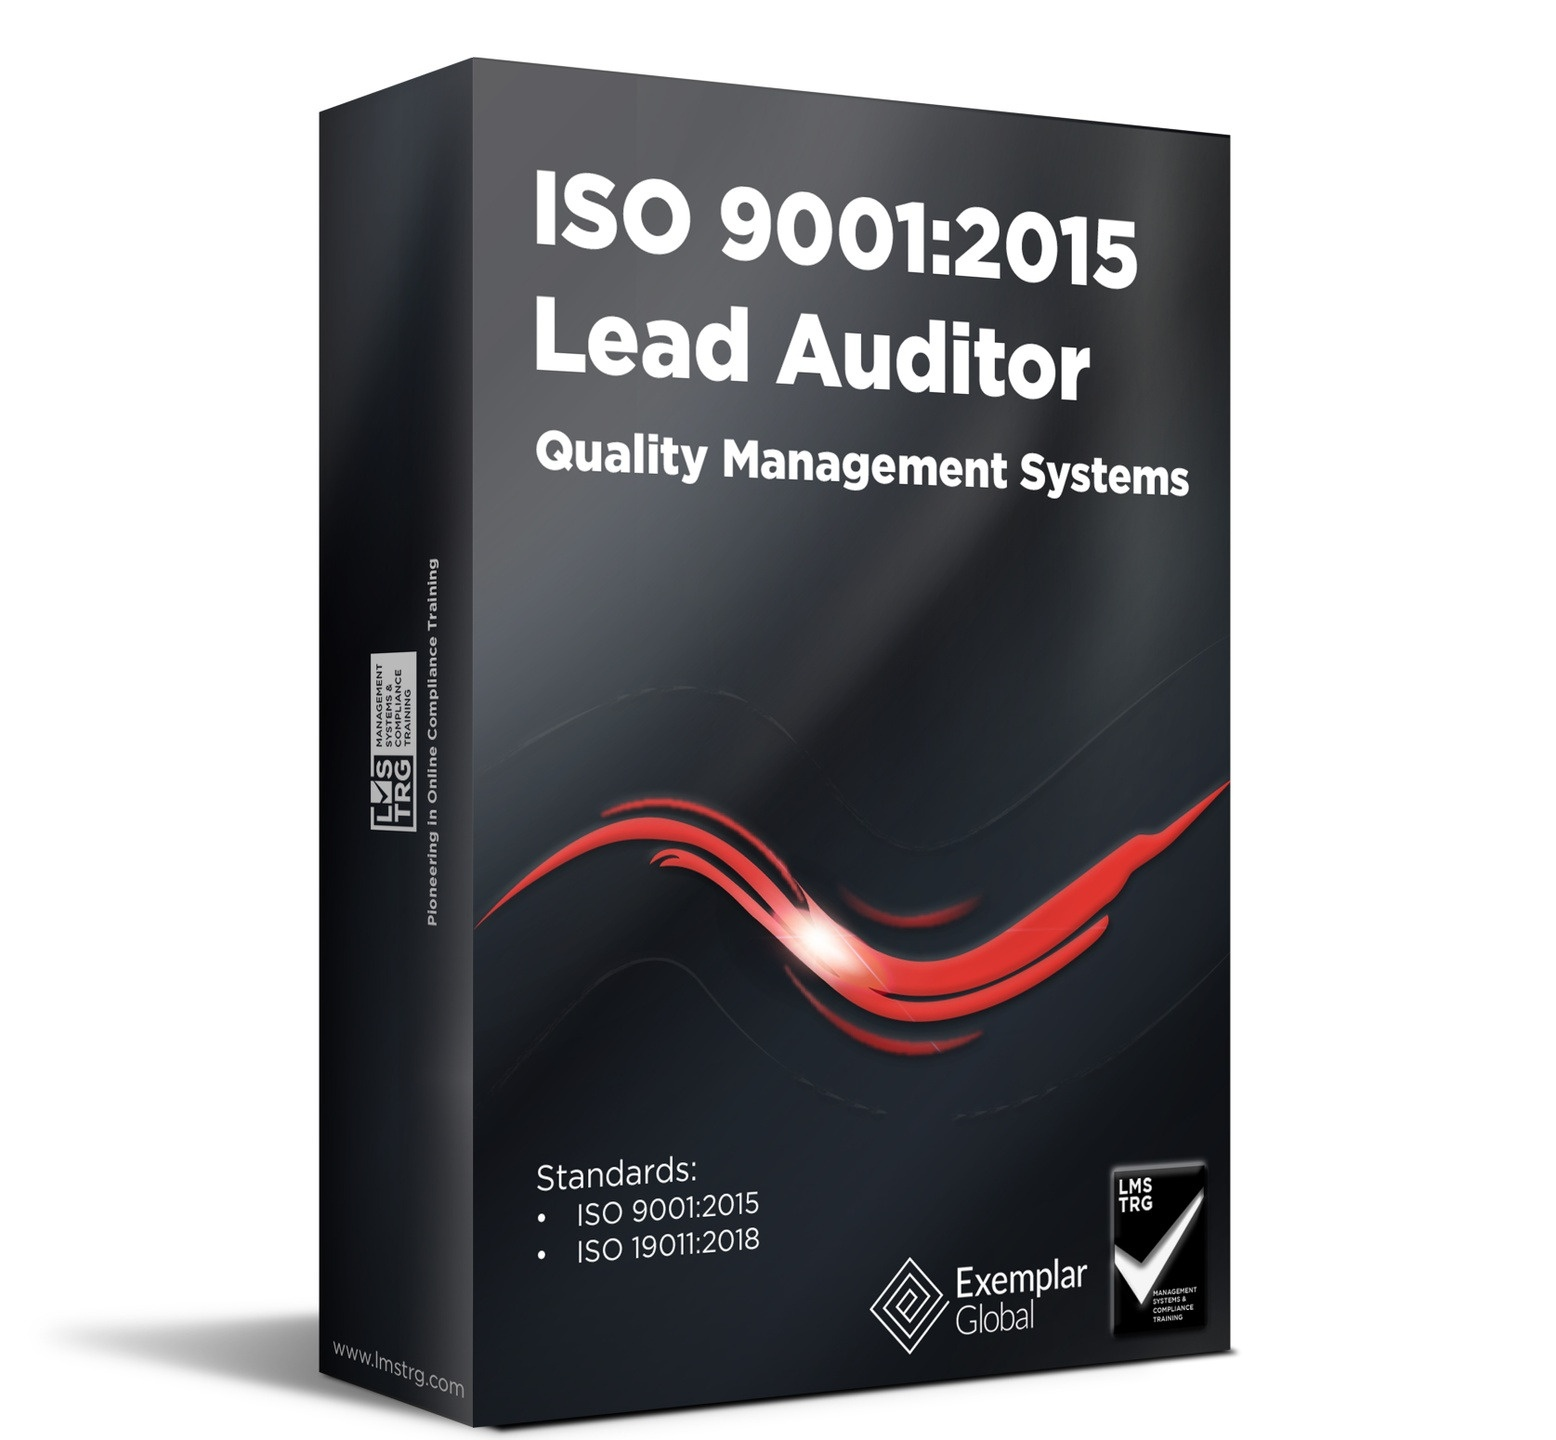 quality management systems lead auditor